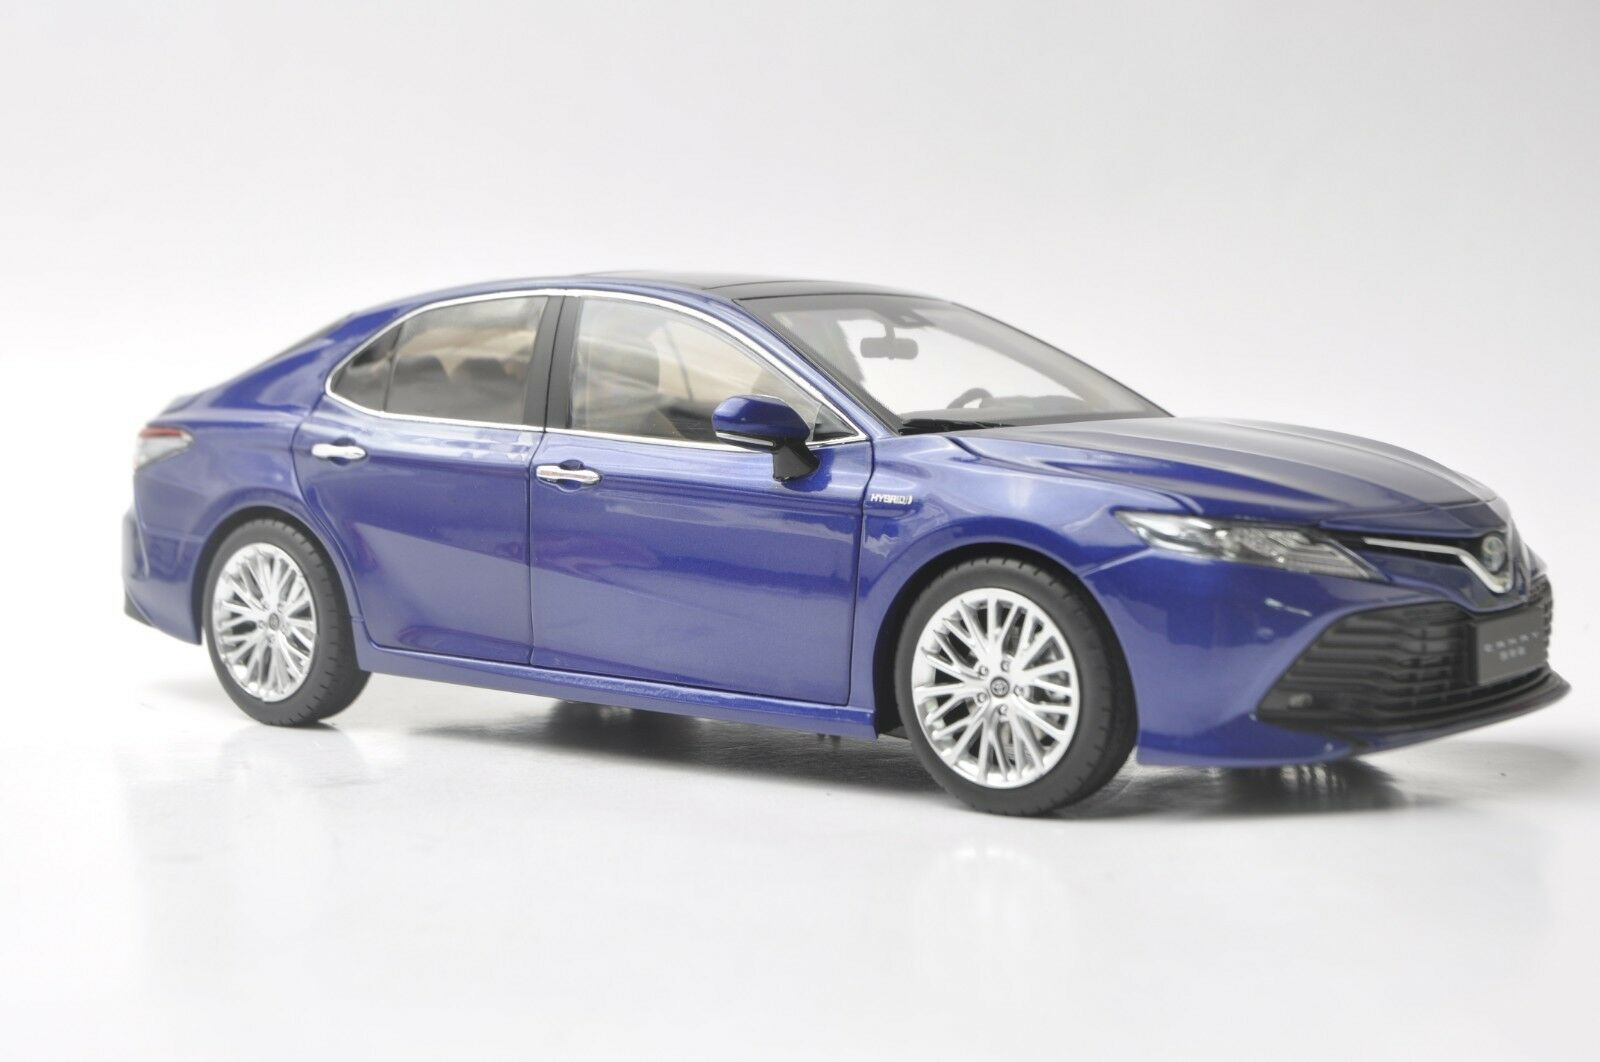 Toyota Camry Hybrid 2018 car model in scale 1 18 bluee